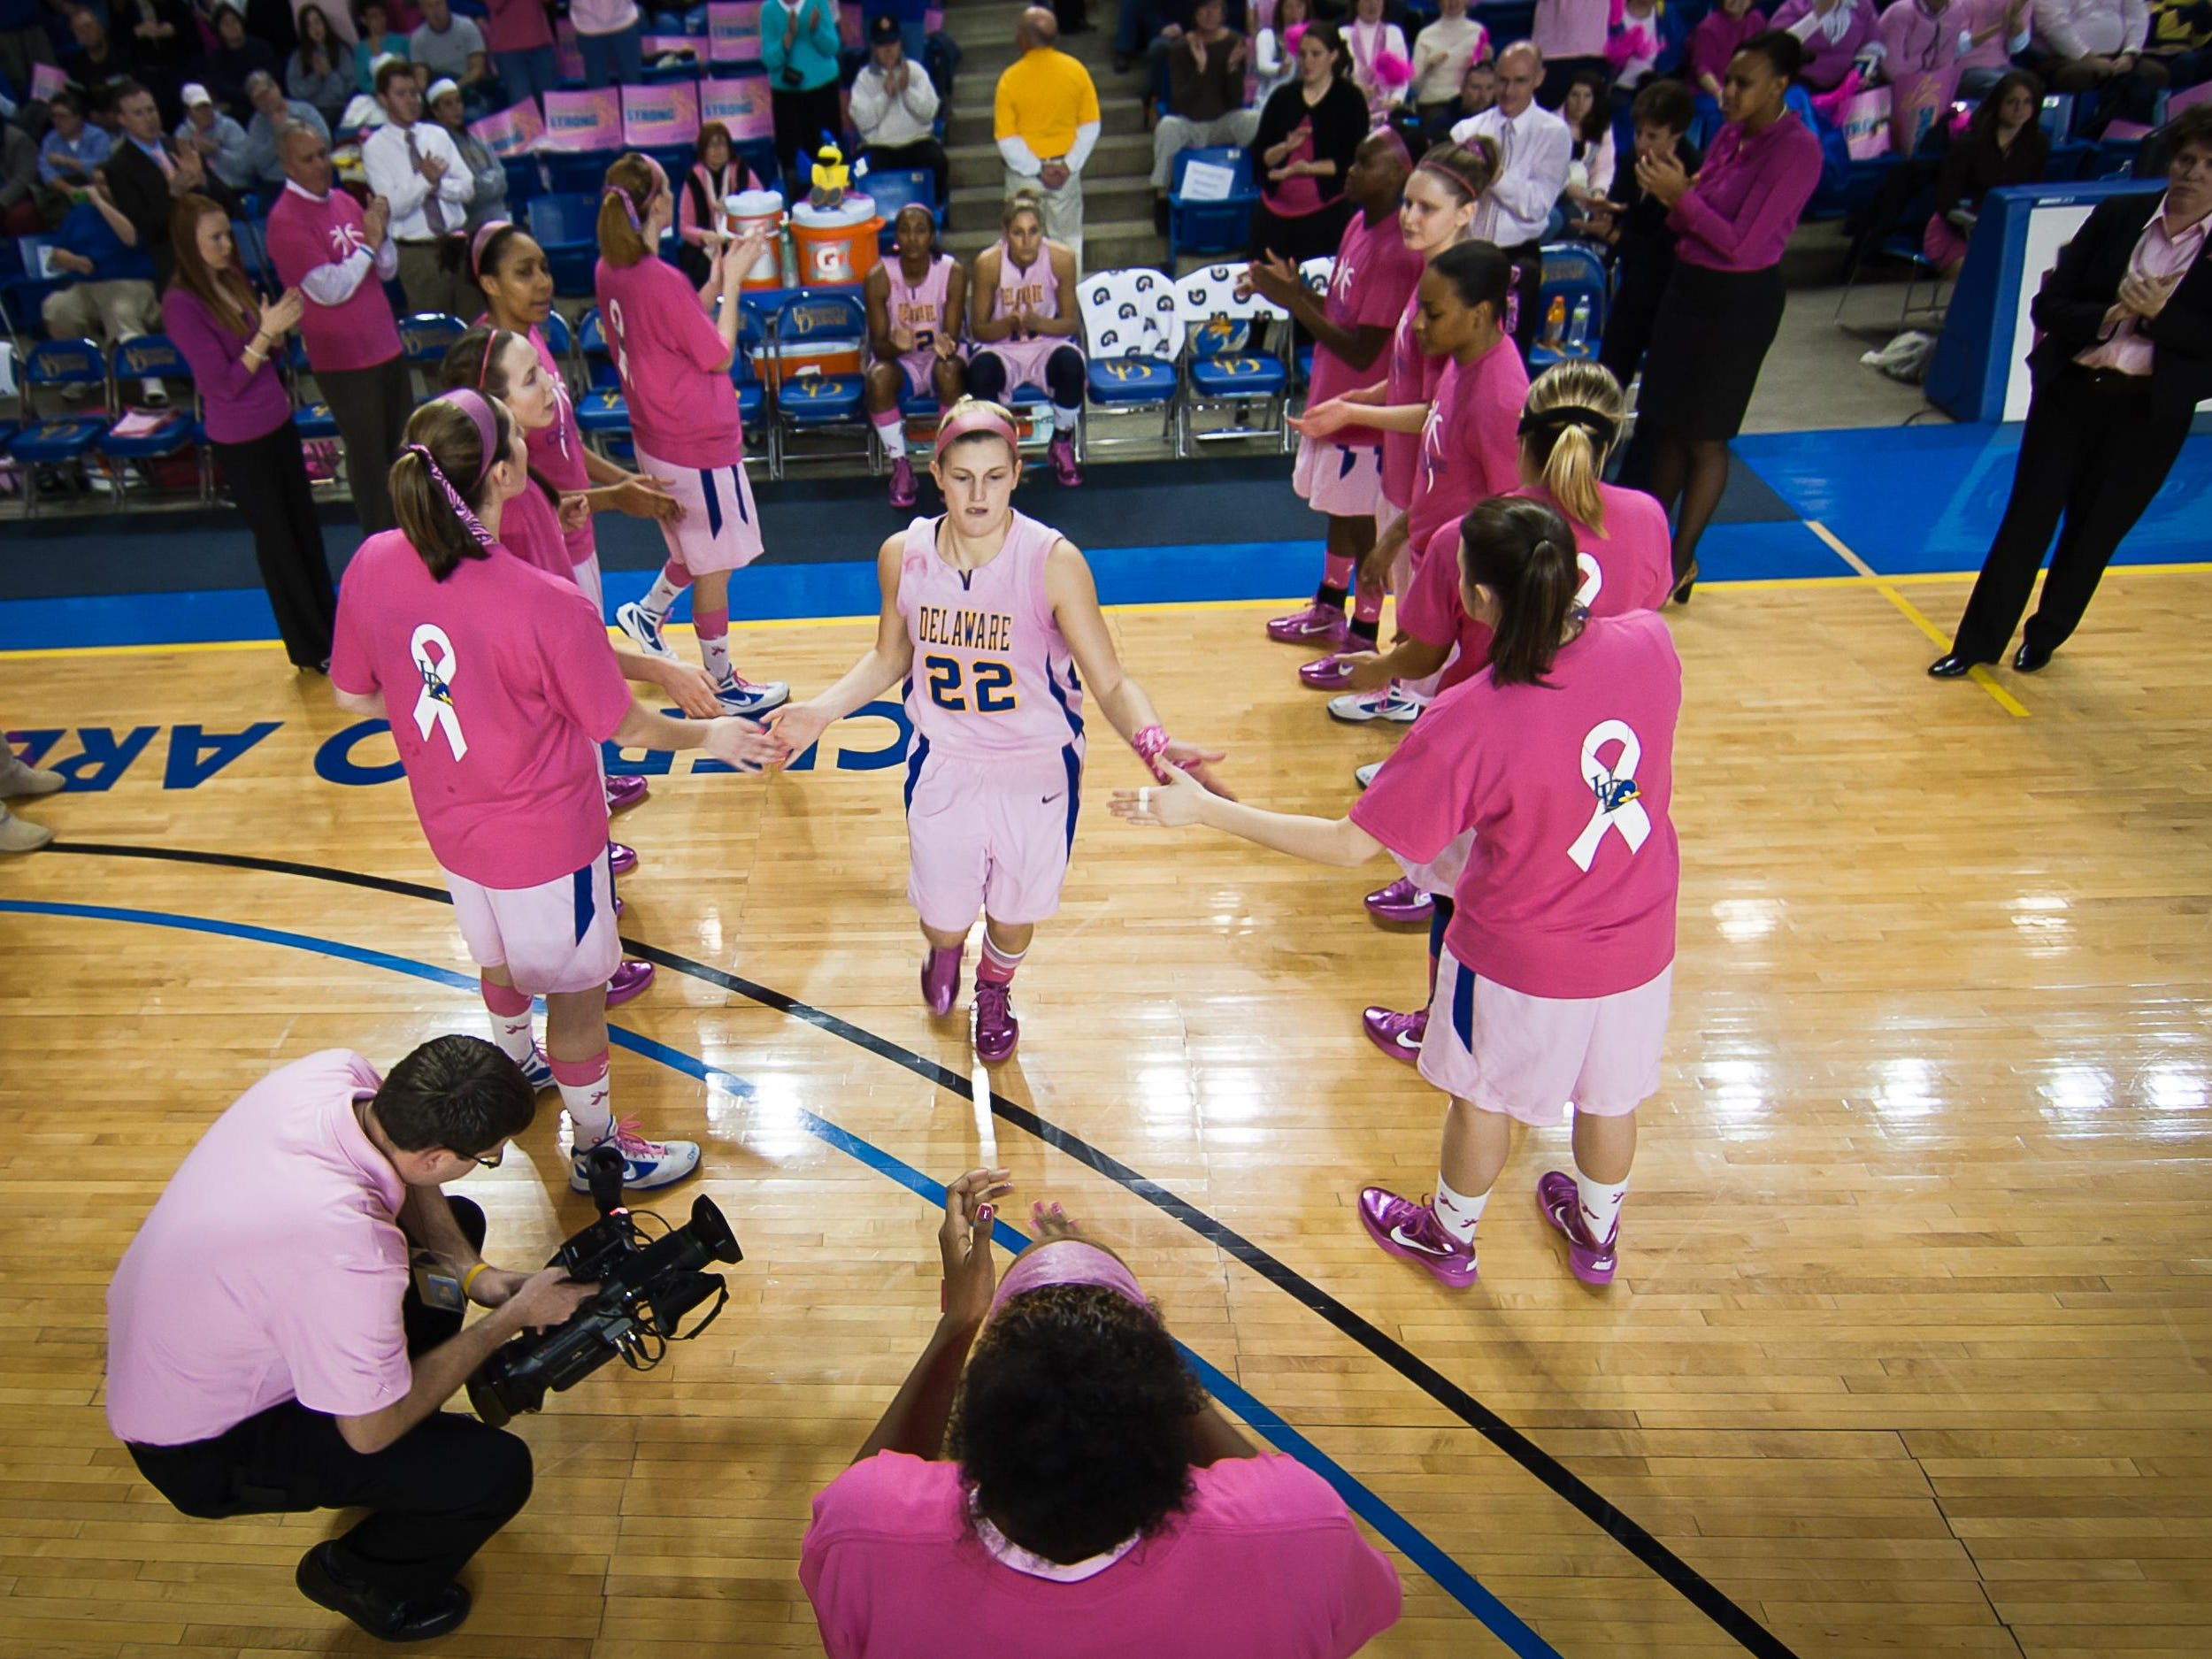 Delaware Junior Guard #22 Lauren Carra is introduced to the crowed prior to the start of a Colonial Athletic Association conference Basketball Game against the VCU Rams.